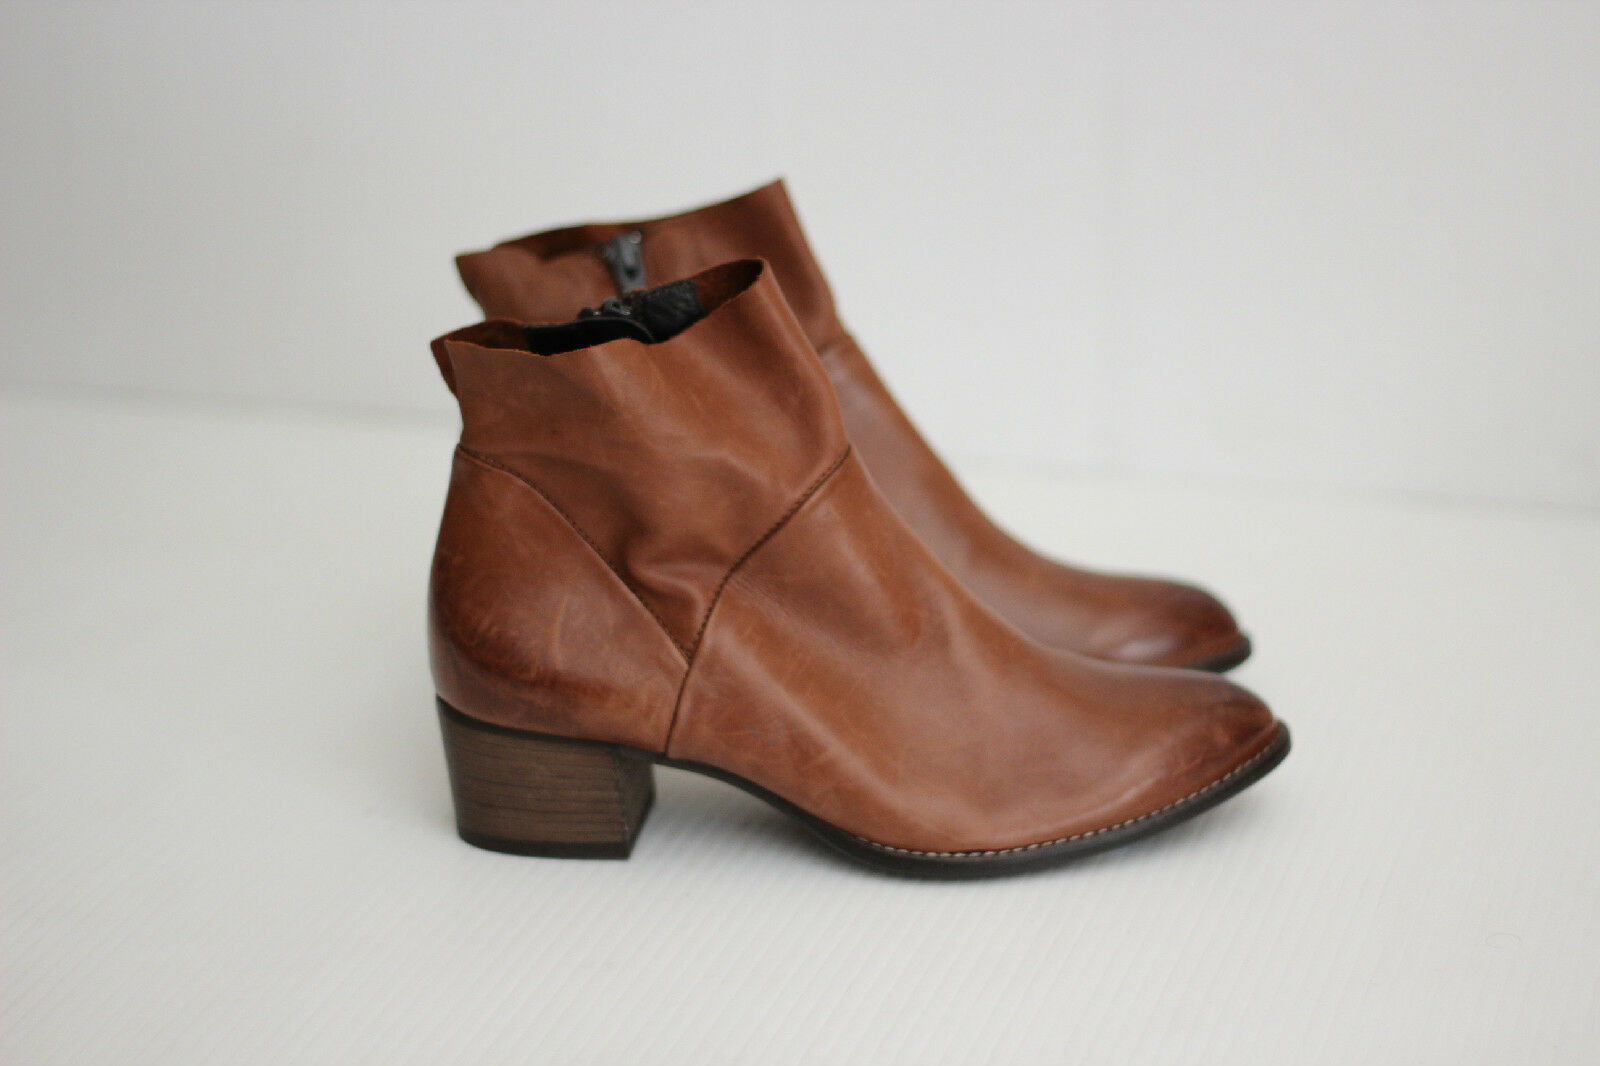 ti renderà soddisfatto NEW Paul verde 'Nelly' Ankle Ankle Ankle avvioie - Marrone Nougat Leather - 5.5US   3(W69)  grande sconto